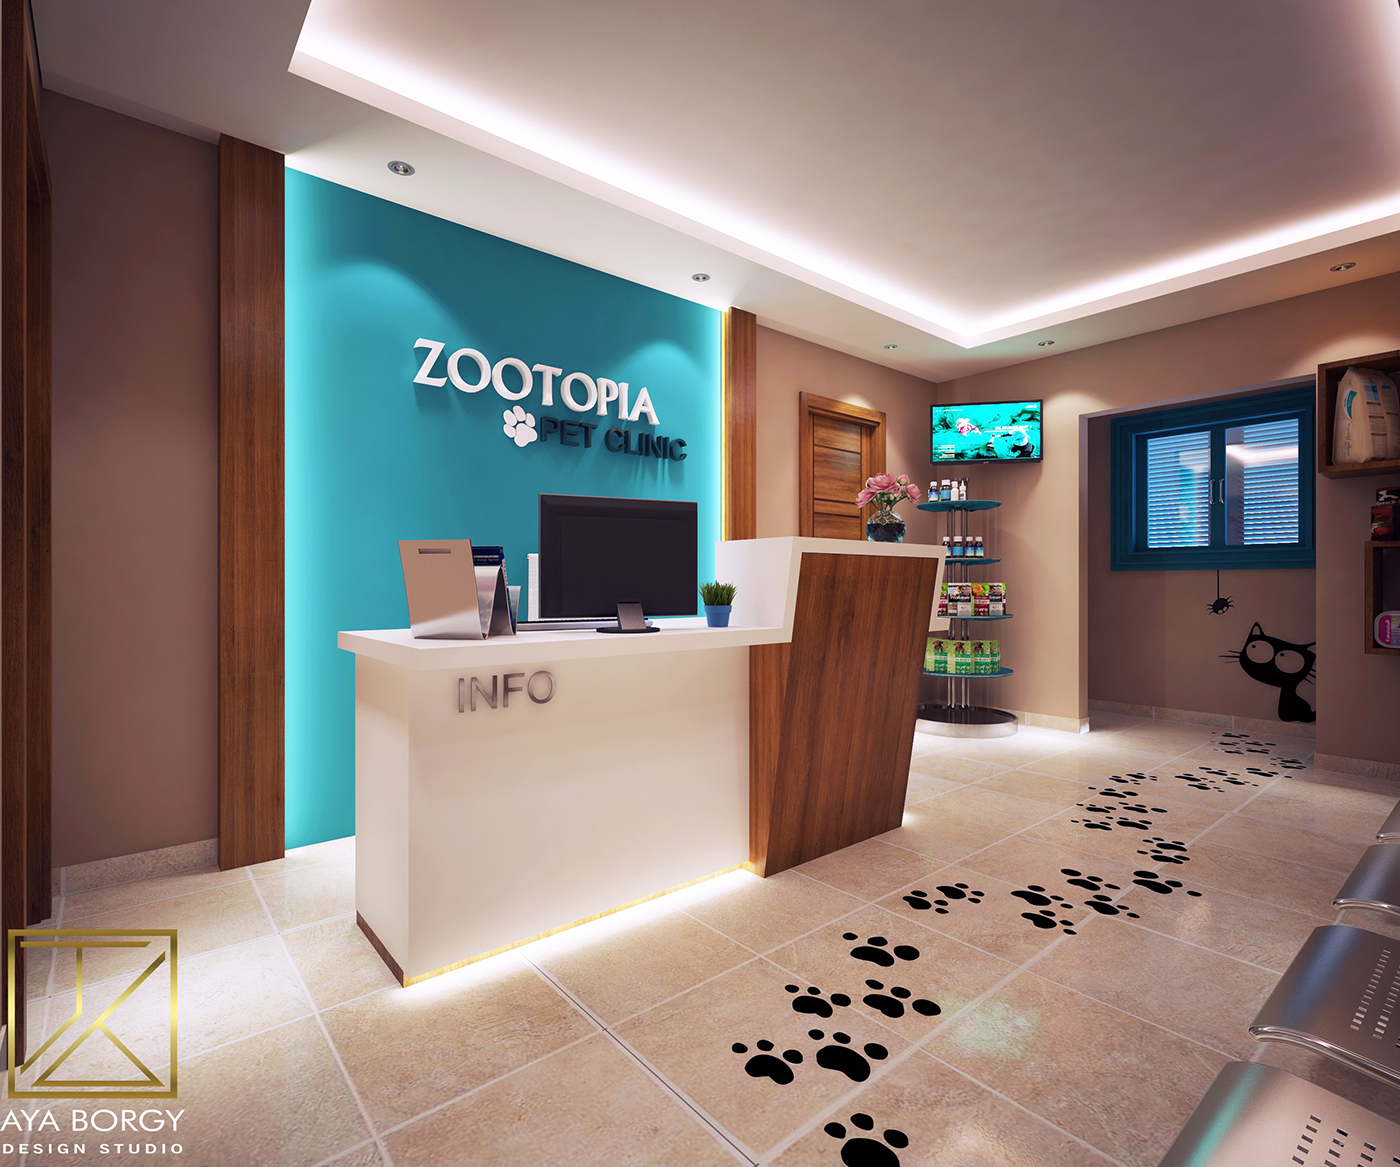 Zootopia A Modern Pet Clinic,the Client Asked For A Simple Modern Design  With A Low Cost Materials So I Used Stickers, Some Wall Colors And A Little  Wood ...